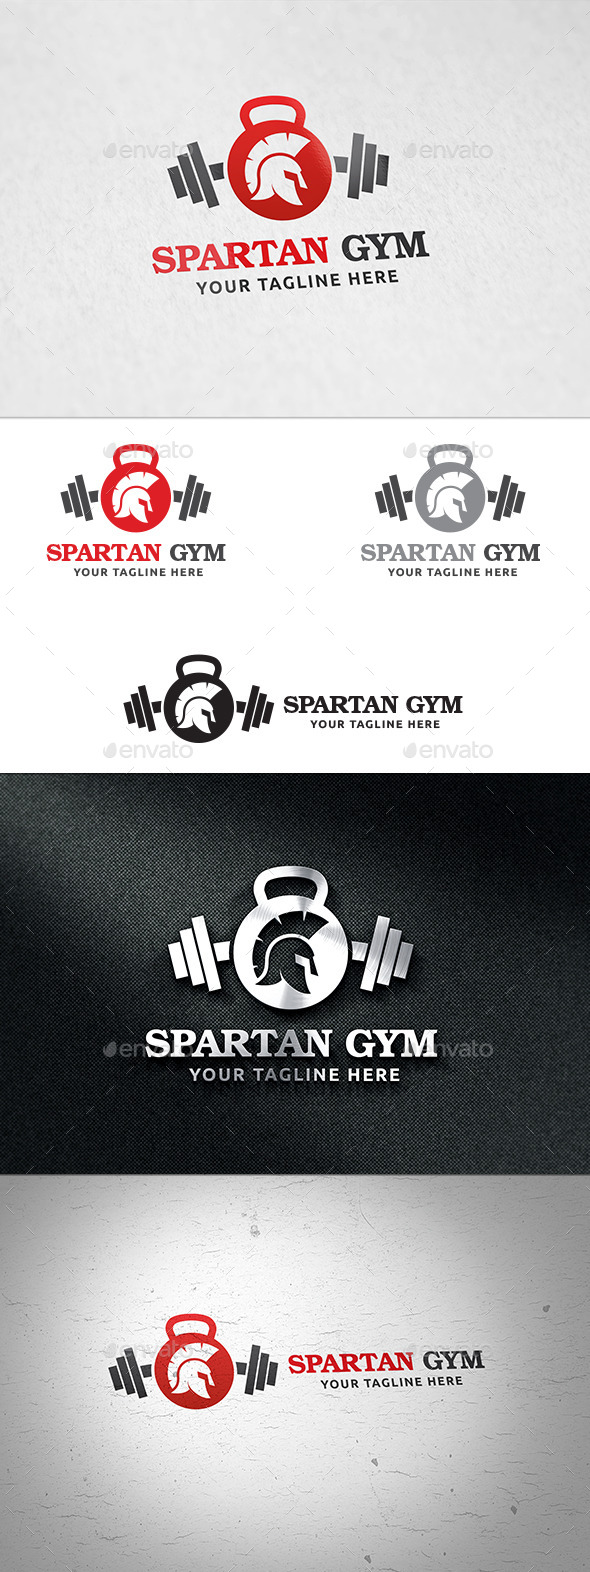 Spartan Gym - Logo Template - Objects Logo Templates